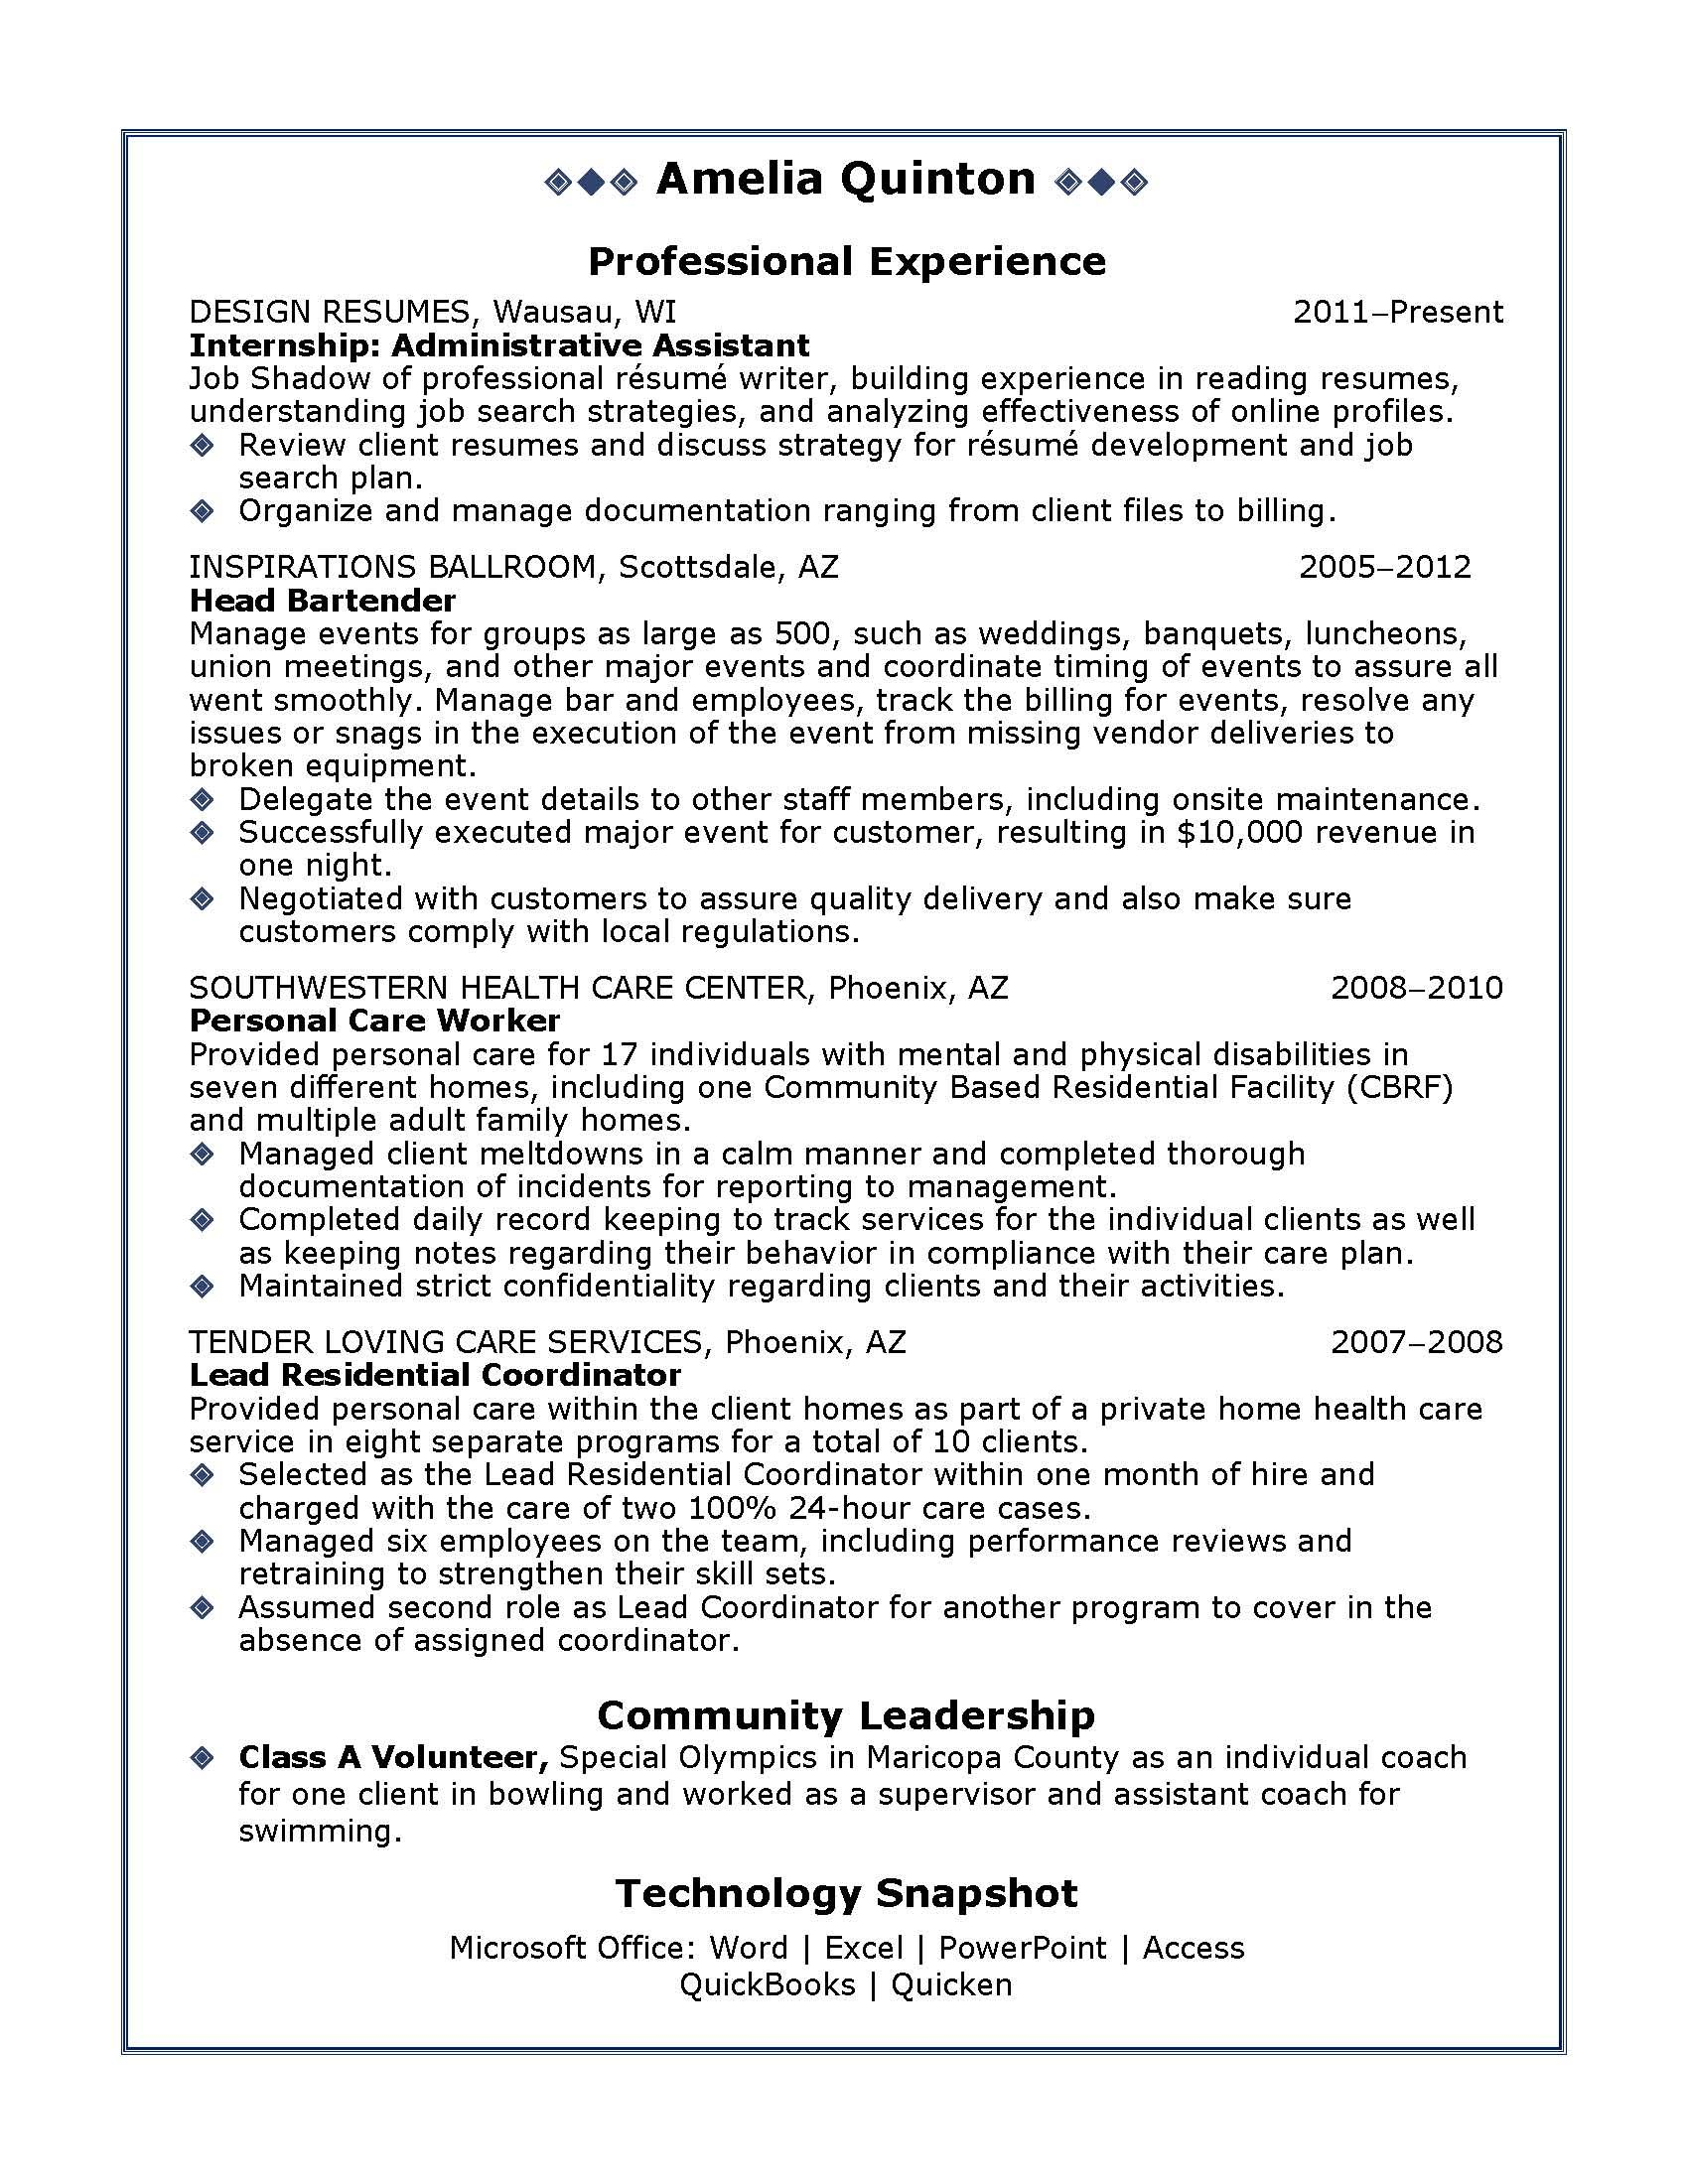 Human Resources Manager Resume Triage Nurse Resume Sample  Httpwwwresumecareertriage